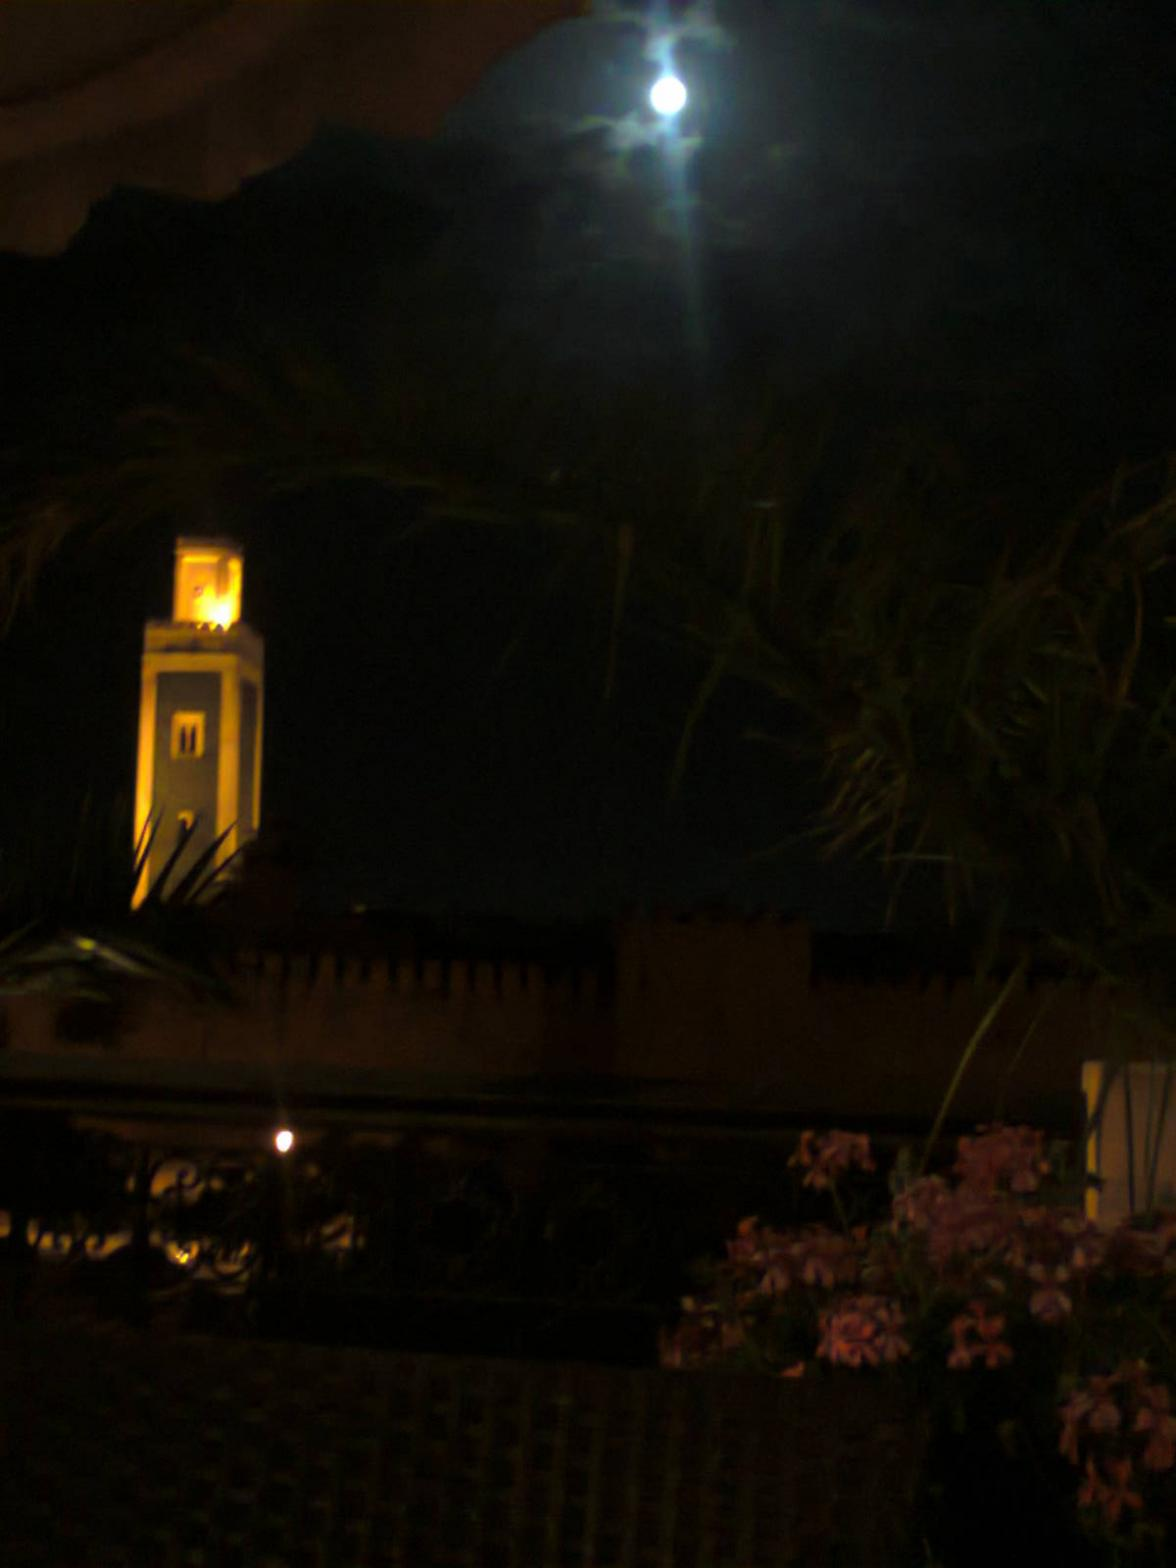 Full moon, the mosque, hot night..who needs more? <3